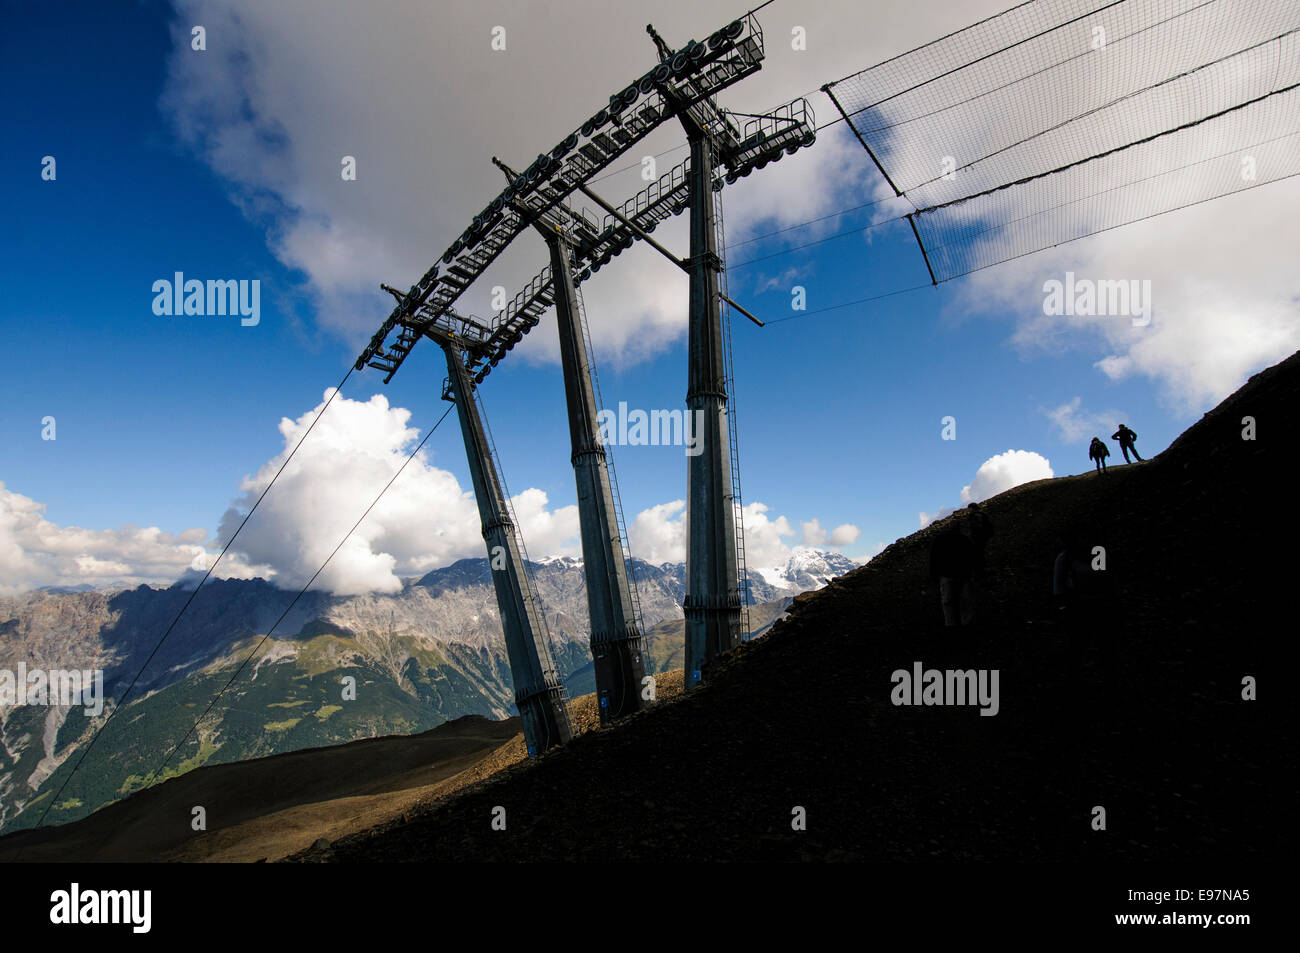 Ski lift cable car in Bormio, Lombardy region of the Alps in northern Italy Stock Photo